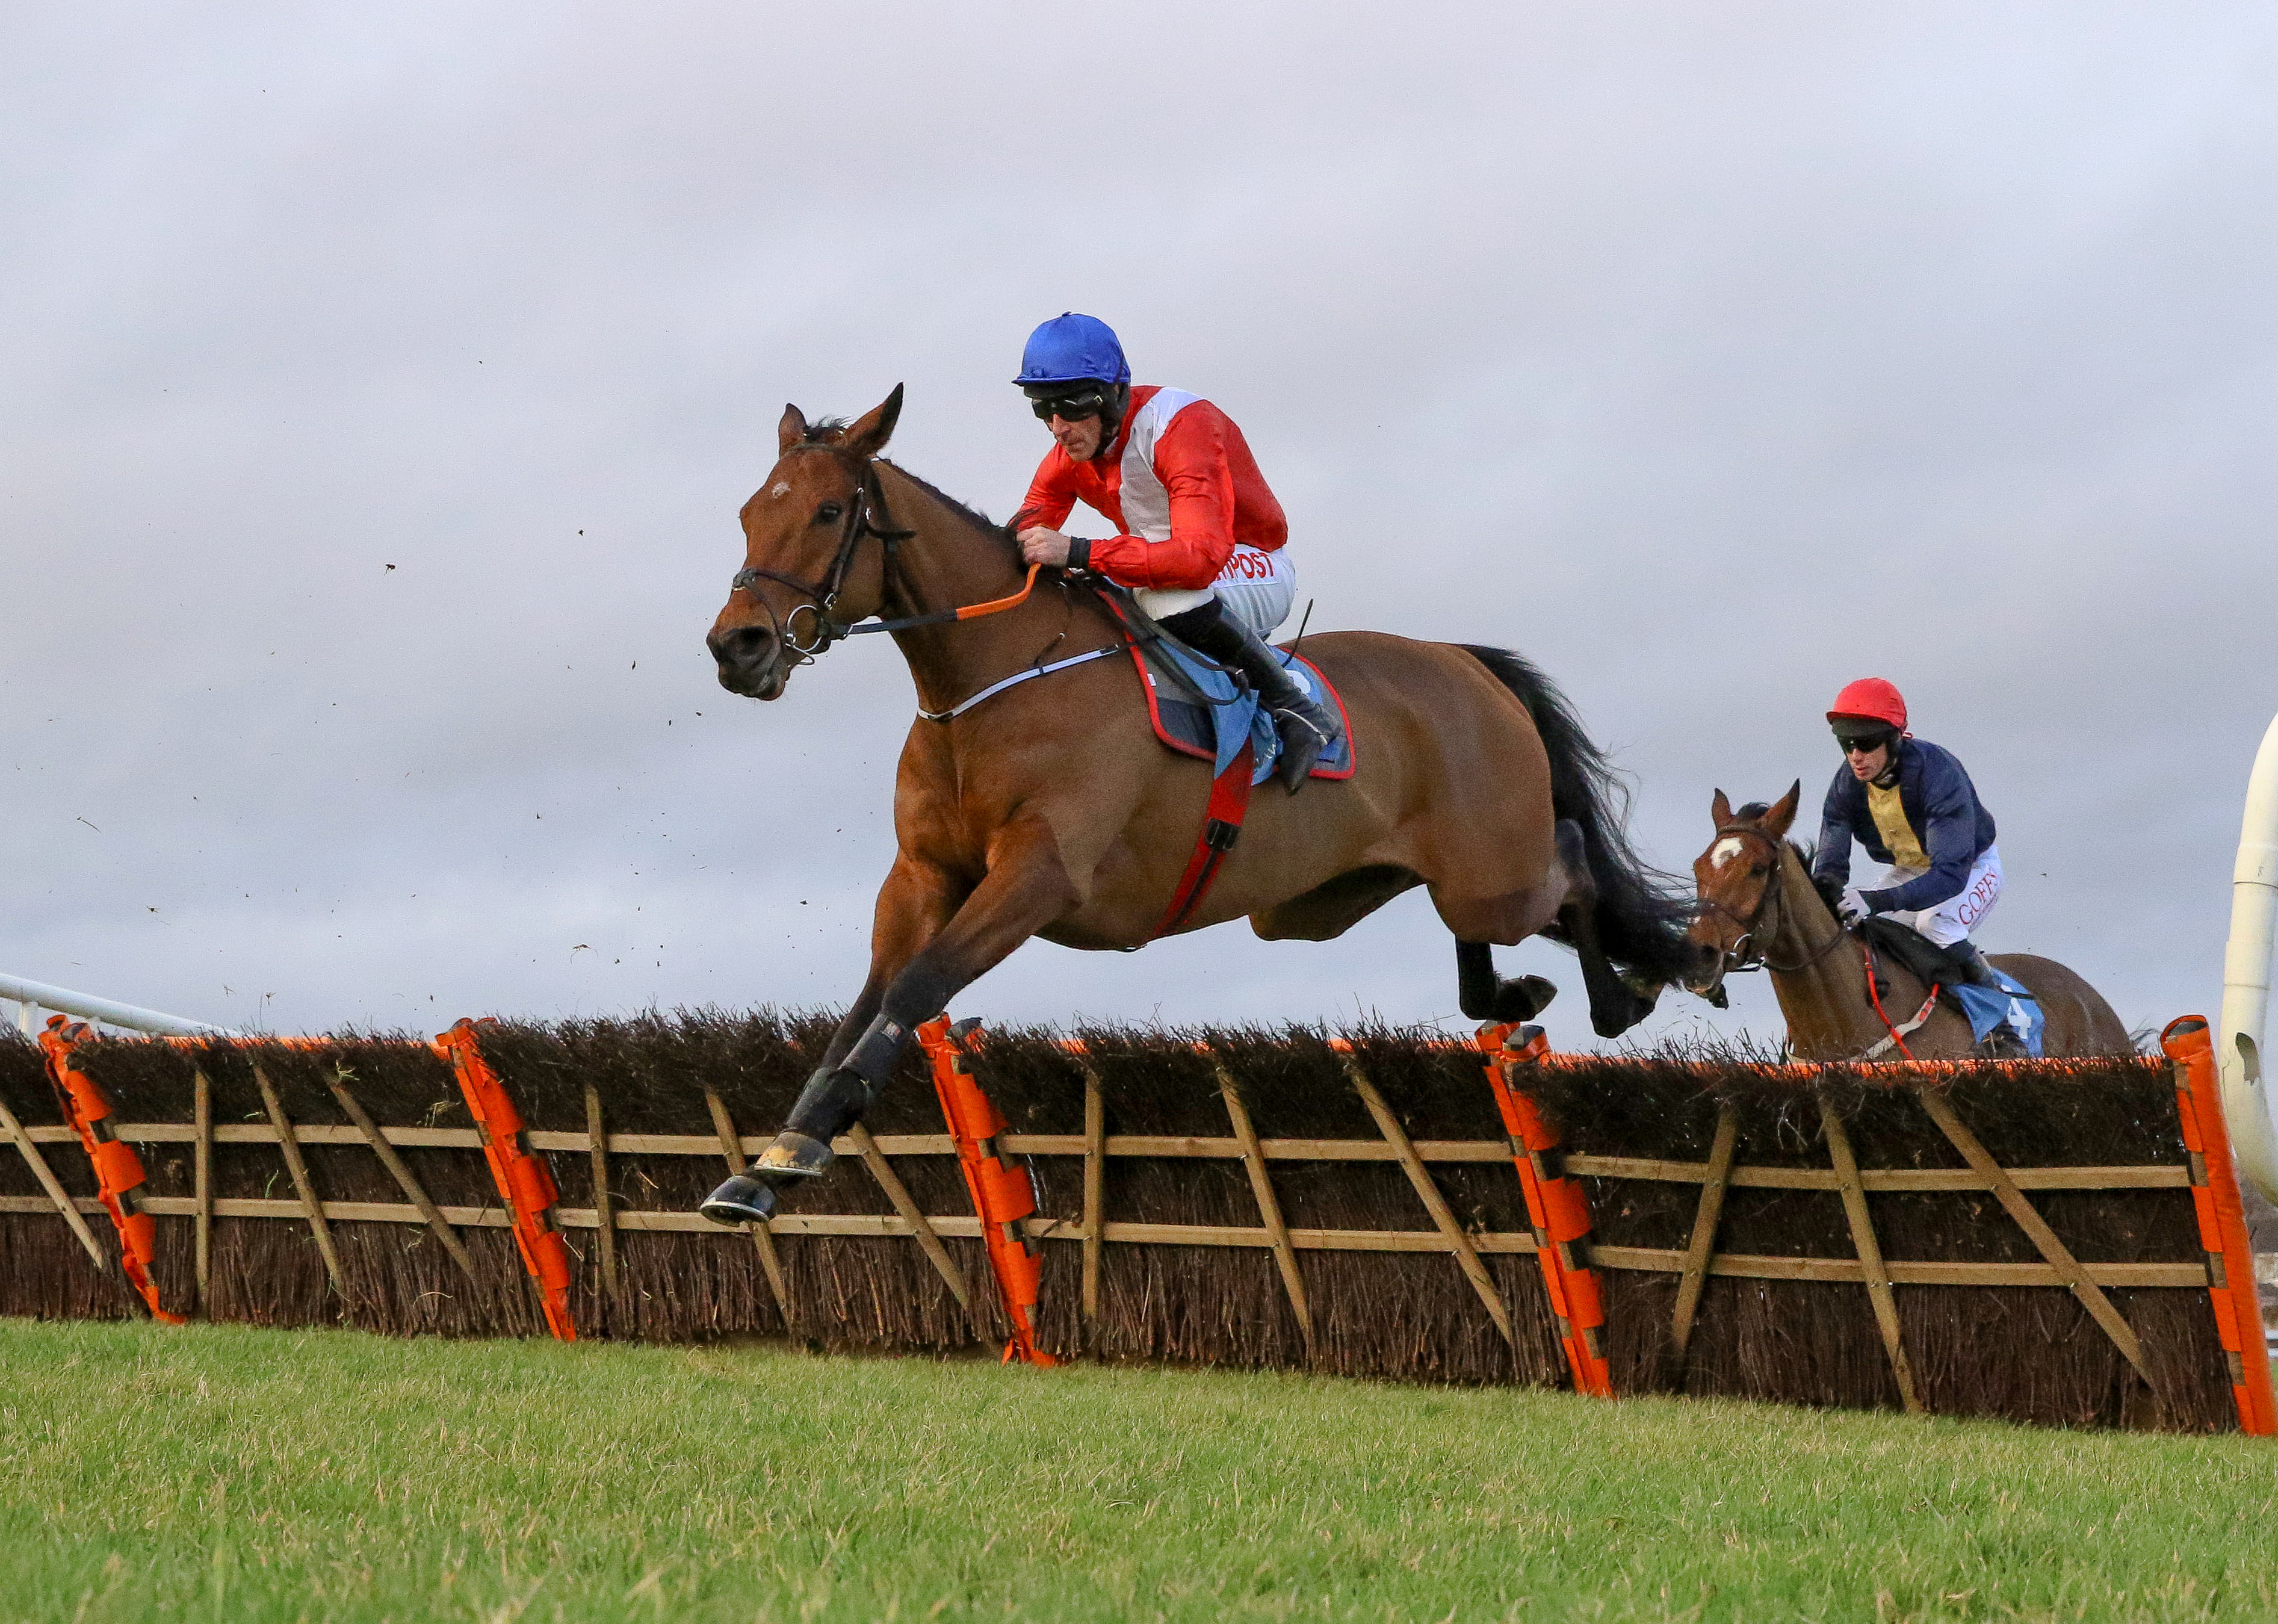 LAWLOR'S OF NAAS NOVICE HURDLE (GR1) - Envoi Allen poursuit sa grande destinée victorieuse